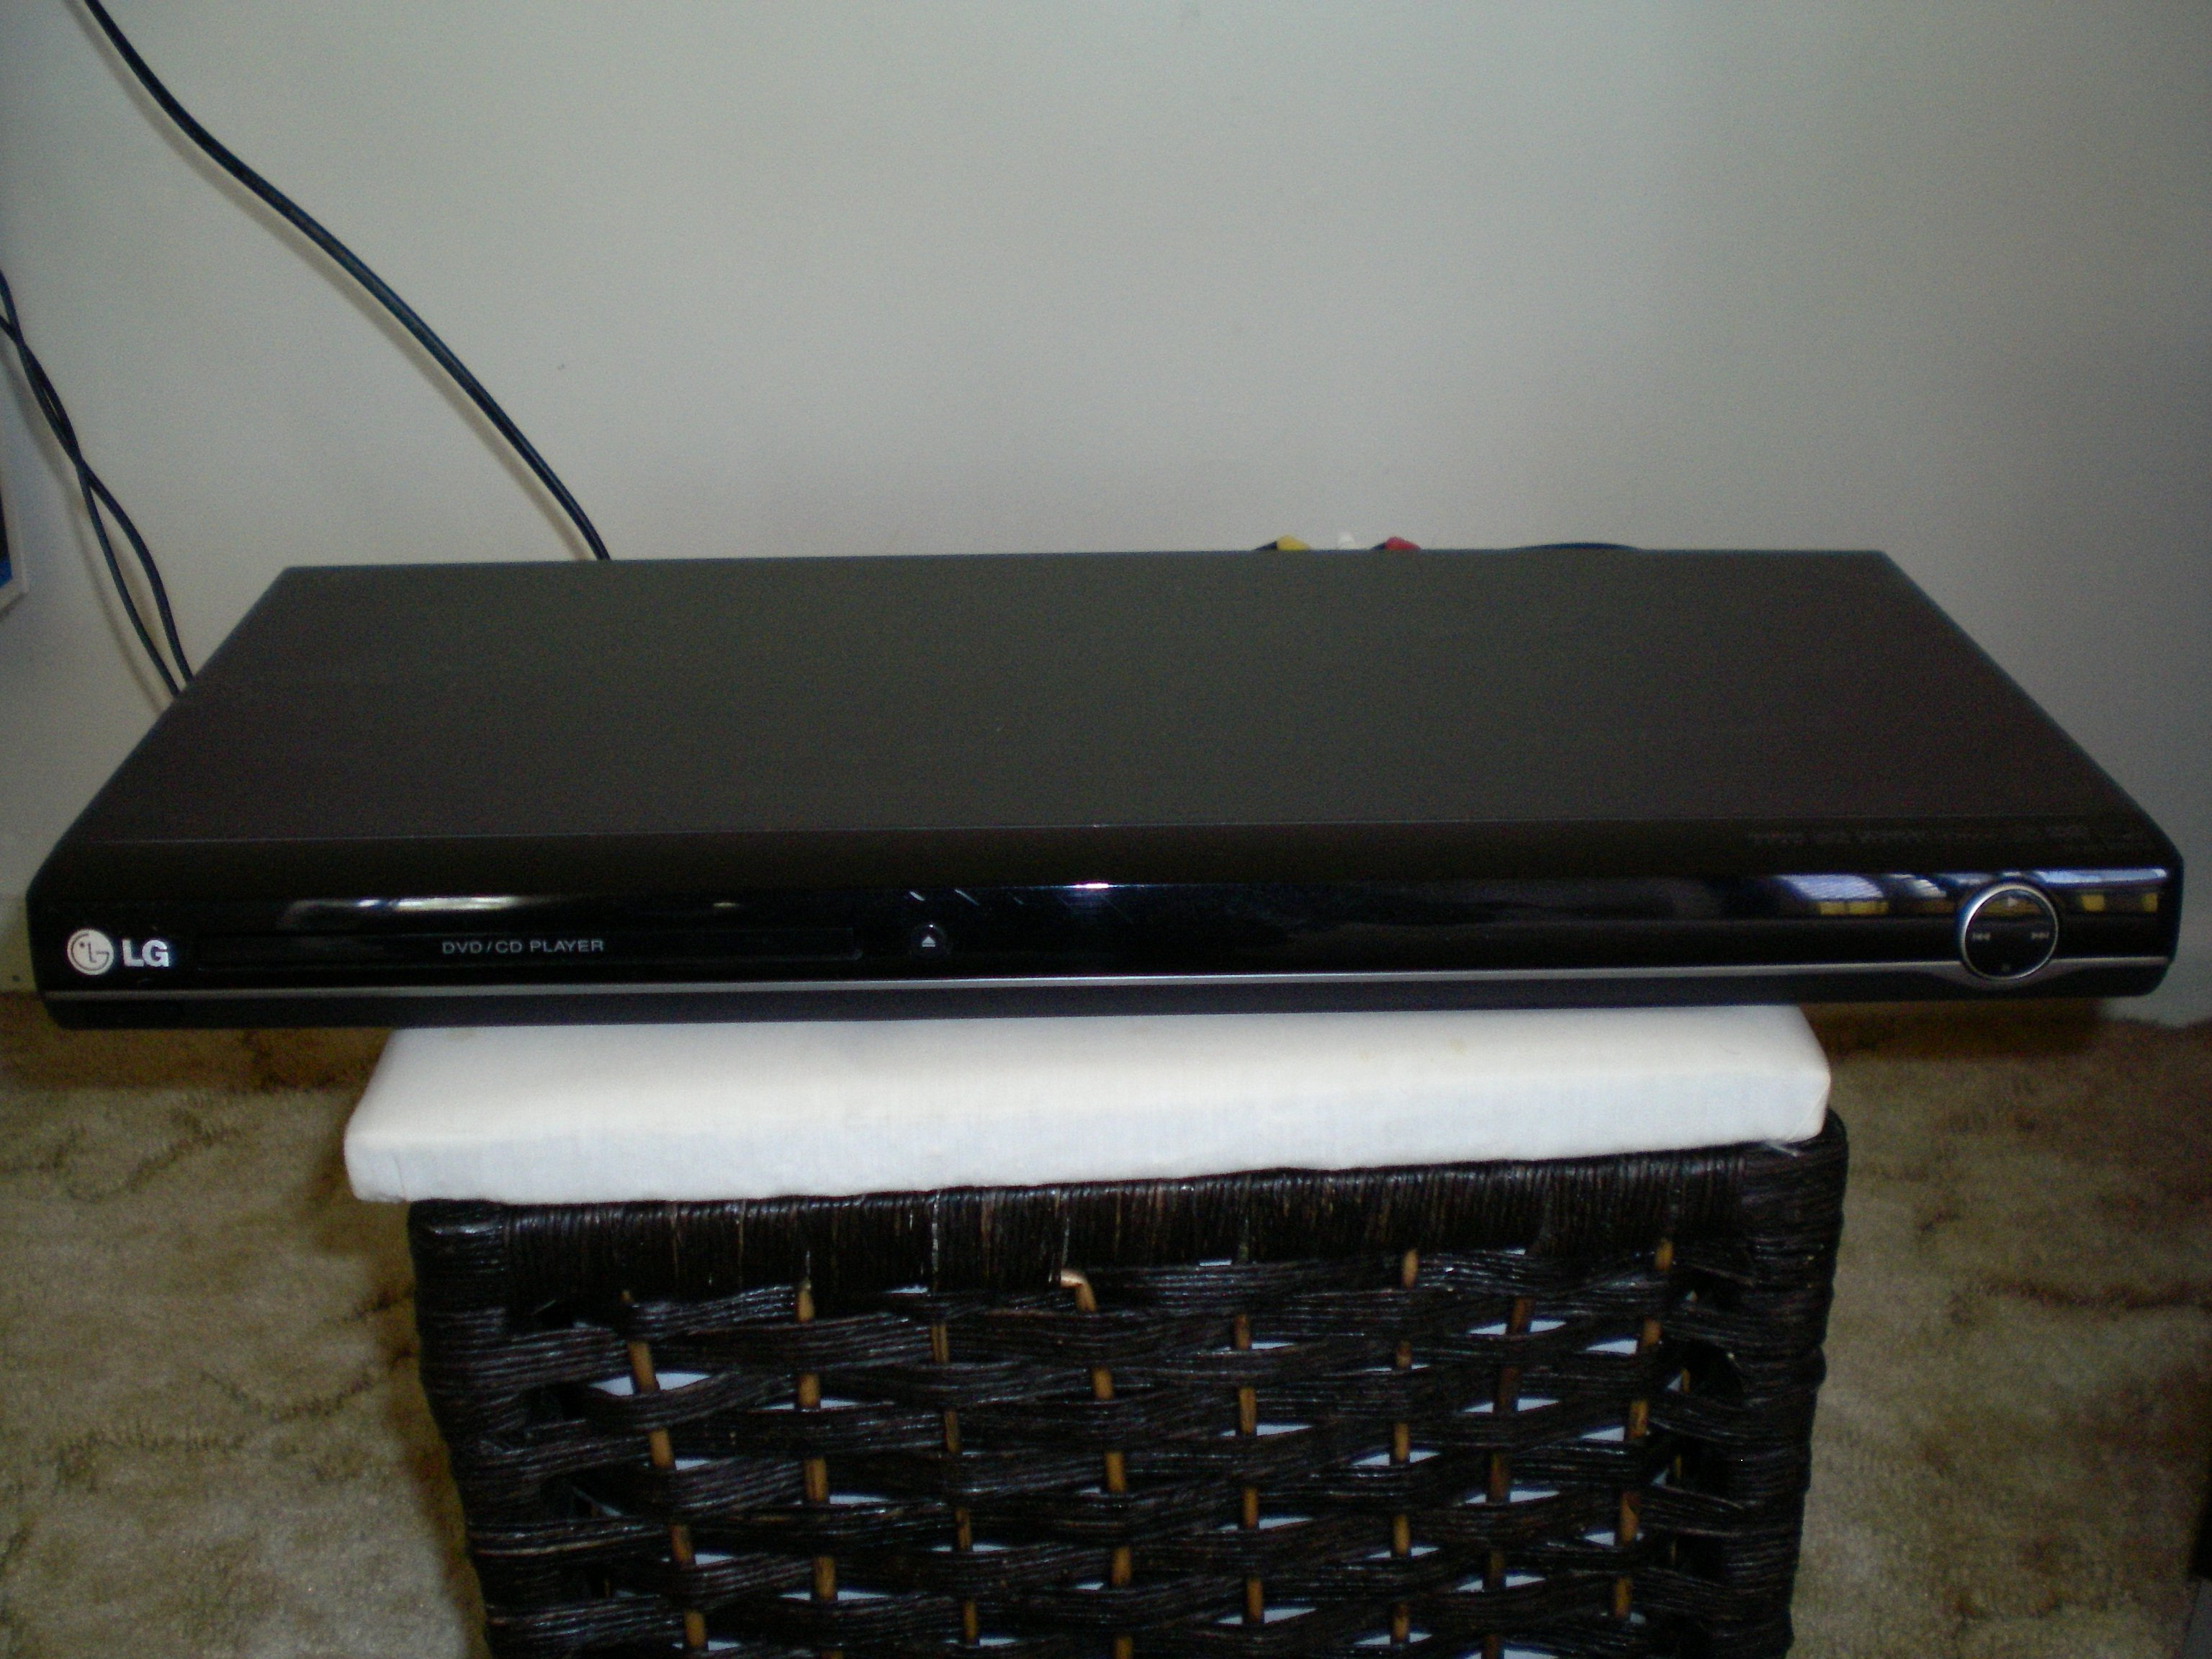 FOR SALE: LG DVD player